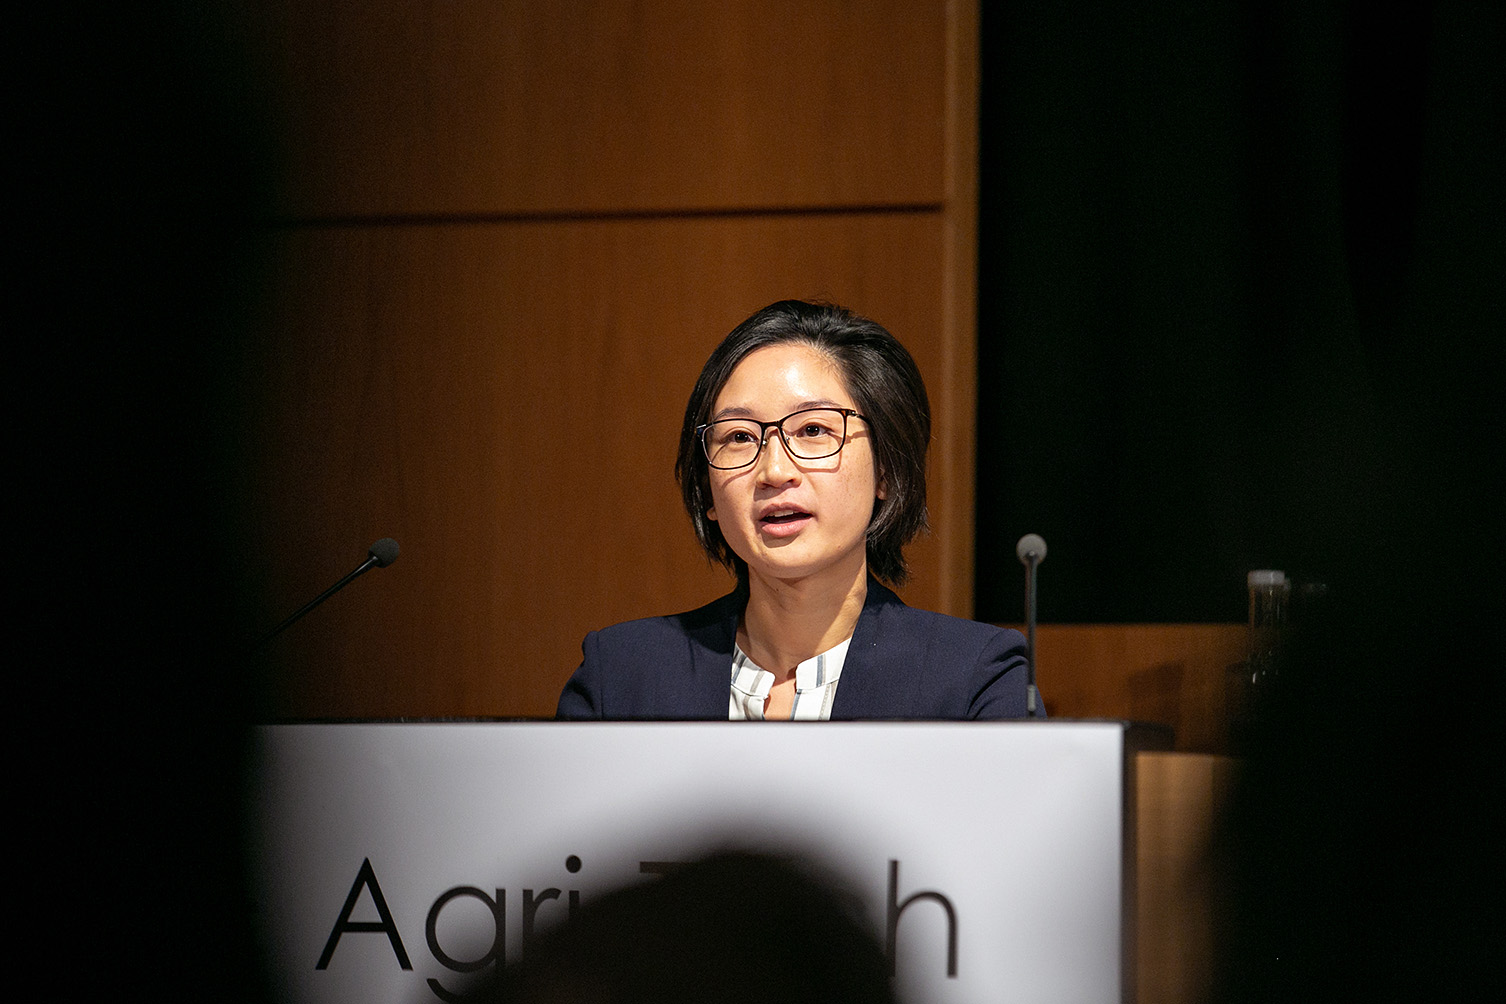 Jacqui Poon, Farming Data, in the REAP 2018 Start-Up Showcase